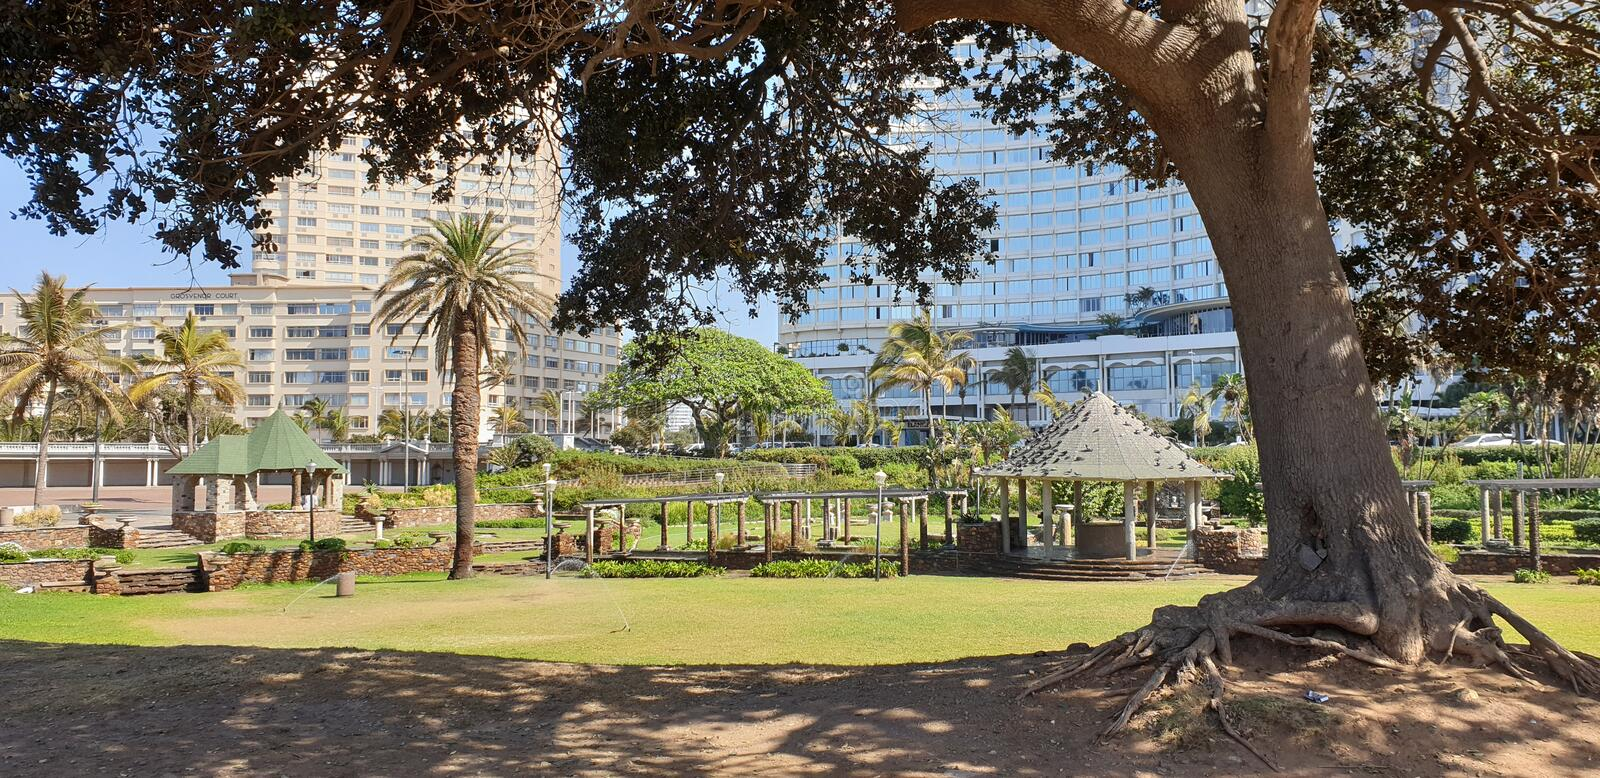 Durban Beachfront Gardens. Hotels, beautiful, green, spring, birds, trees, grass, antique, opd, old, palms, pretty, aesthetic, roots, shade, sunny, morning stock photo